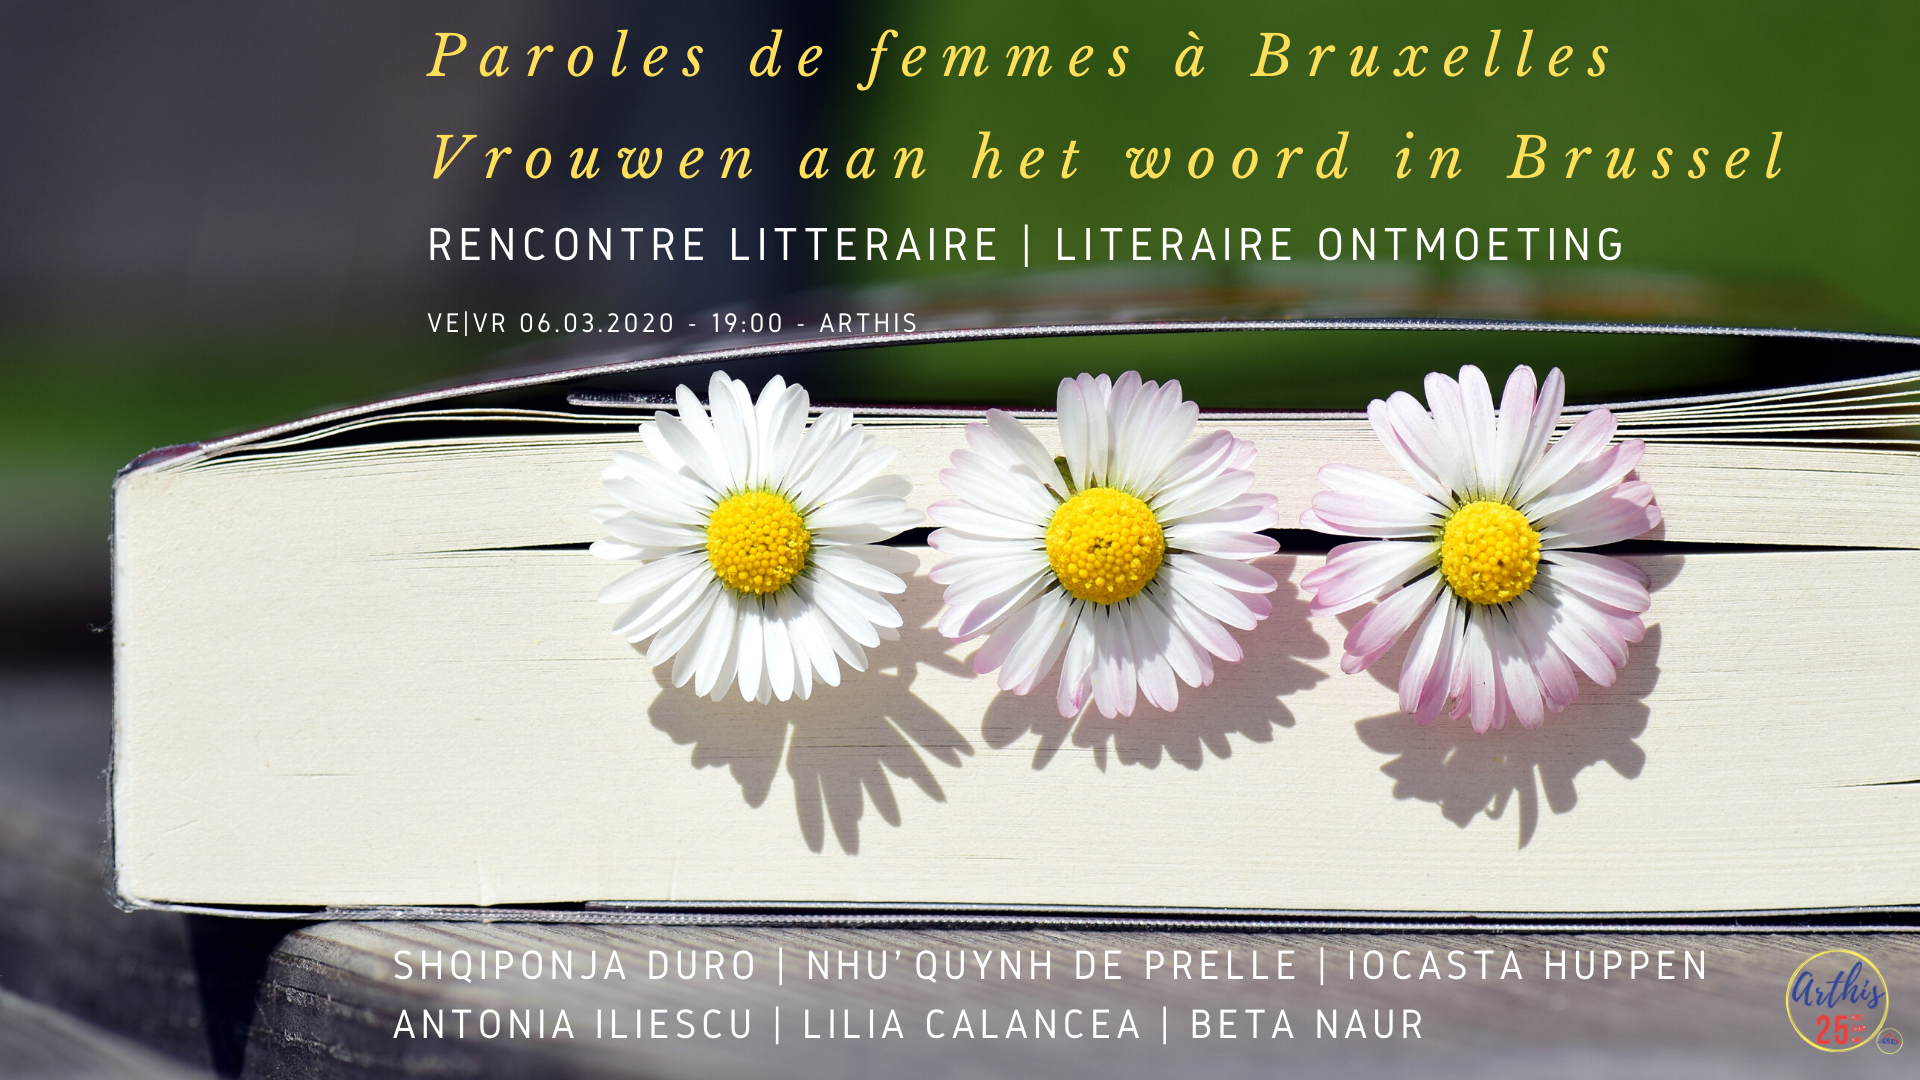 paroles femmes06.03.2020